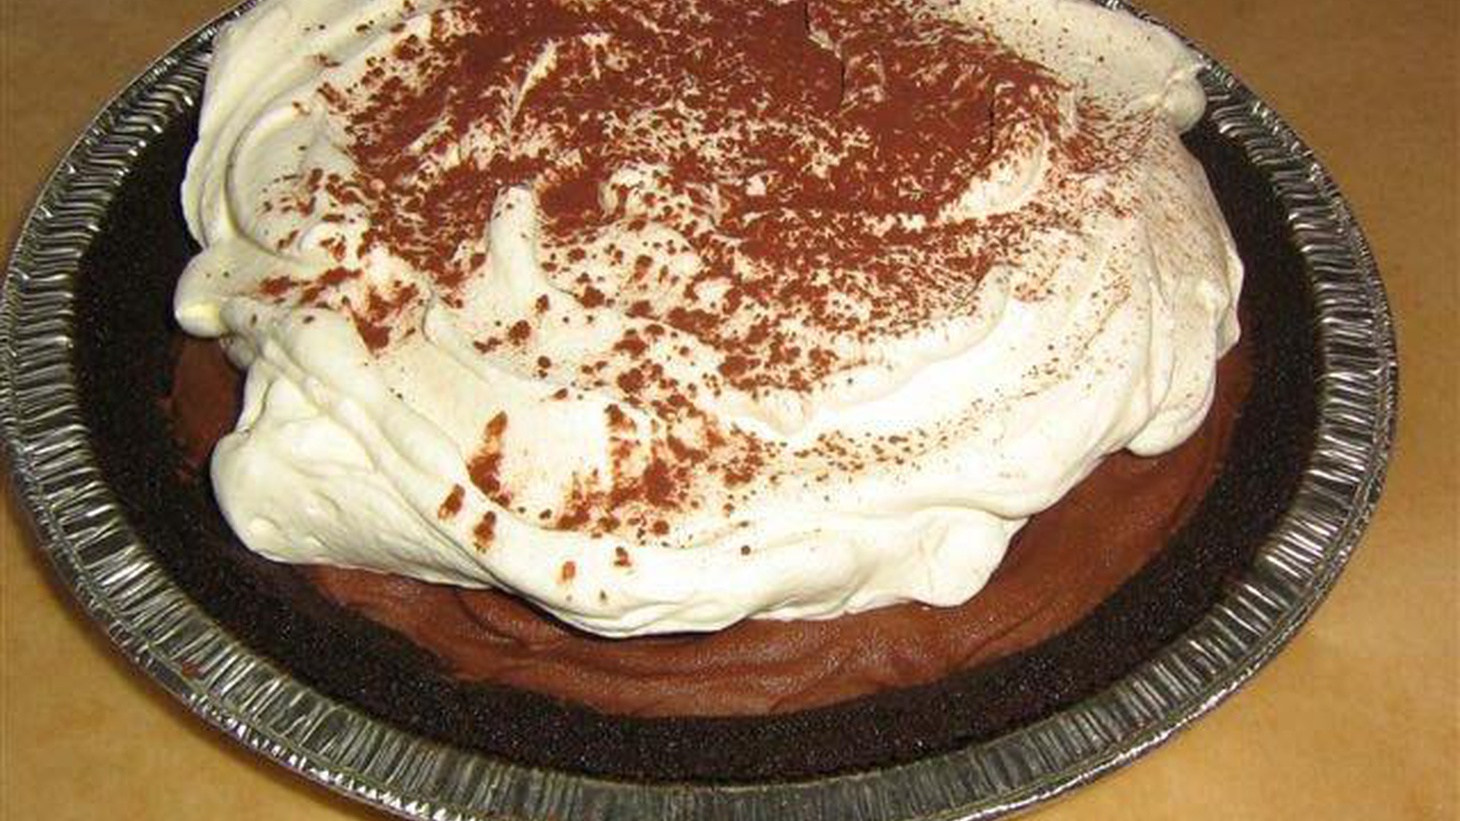 Pastry Chef Roxana Jullapat of Ammo Cafe in Hollywood shares her recipe for Chocolate Silk Pie.